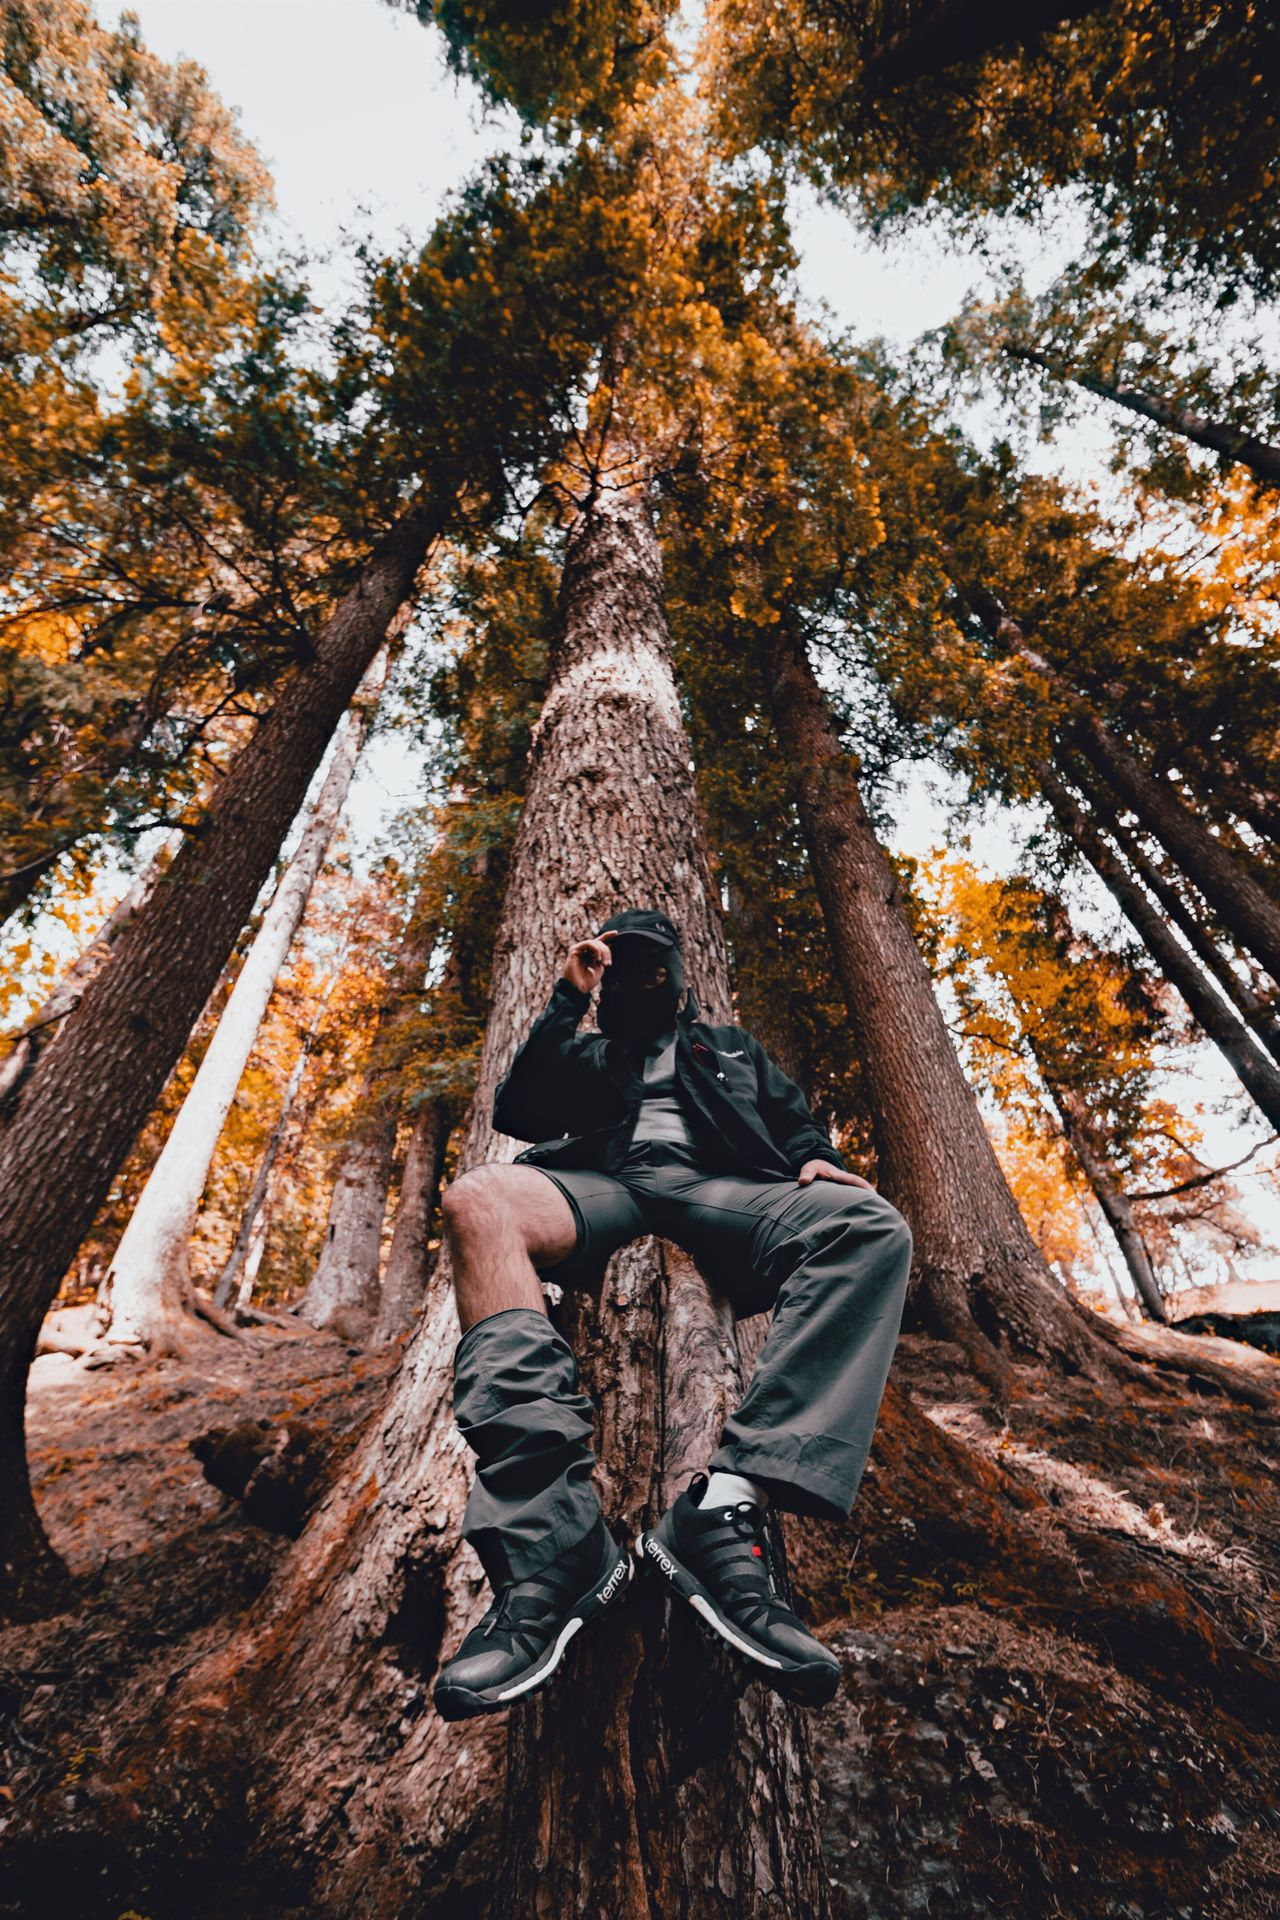 Hello there! Tree People And Places Casual Clothing Outdoors Non-urban Scene Nature Carefree Exploration Tranquility WoodLand Beauty In Nature Scenics Tranquility EyeEm EyeEm Best Shots EyeEmBestPics Eyeem Market Adventure Tree Trunk Forest Into The Wild Low Angle View Into The Woods Himalayas Person